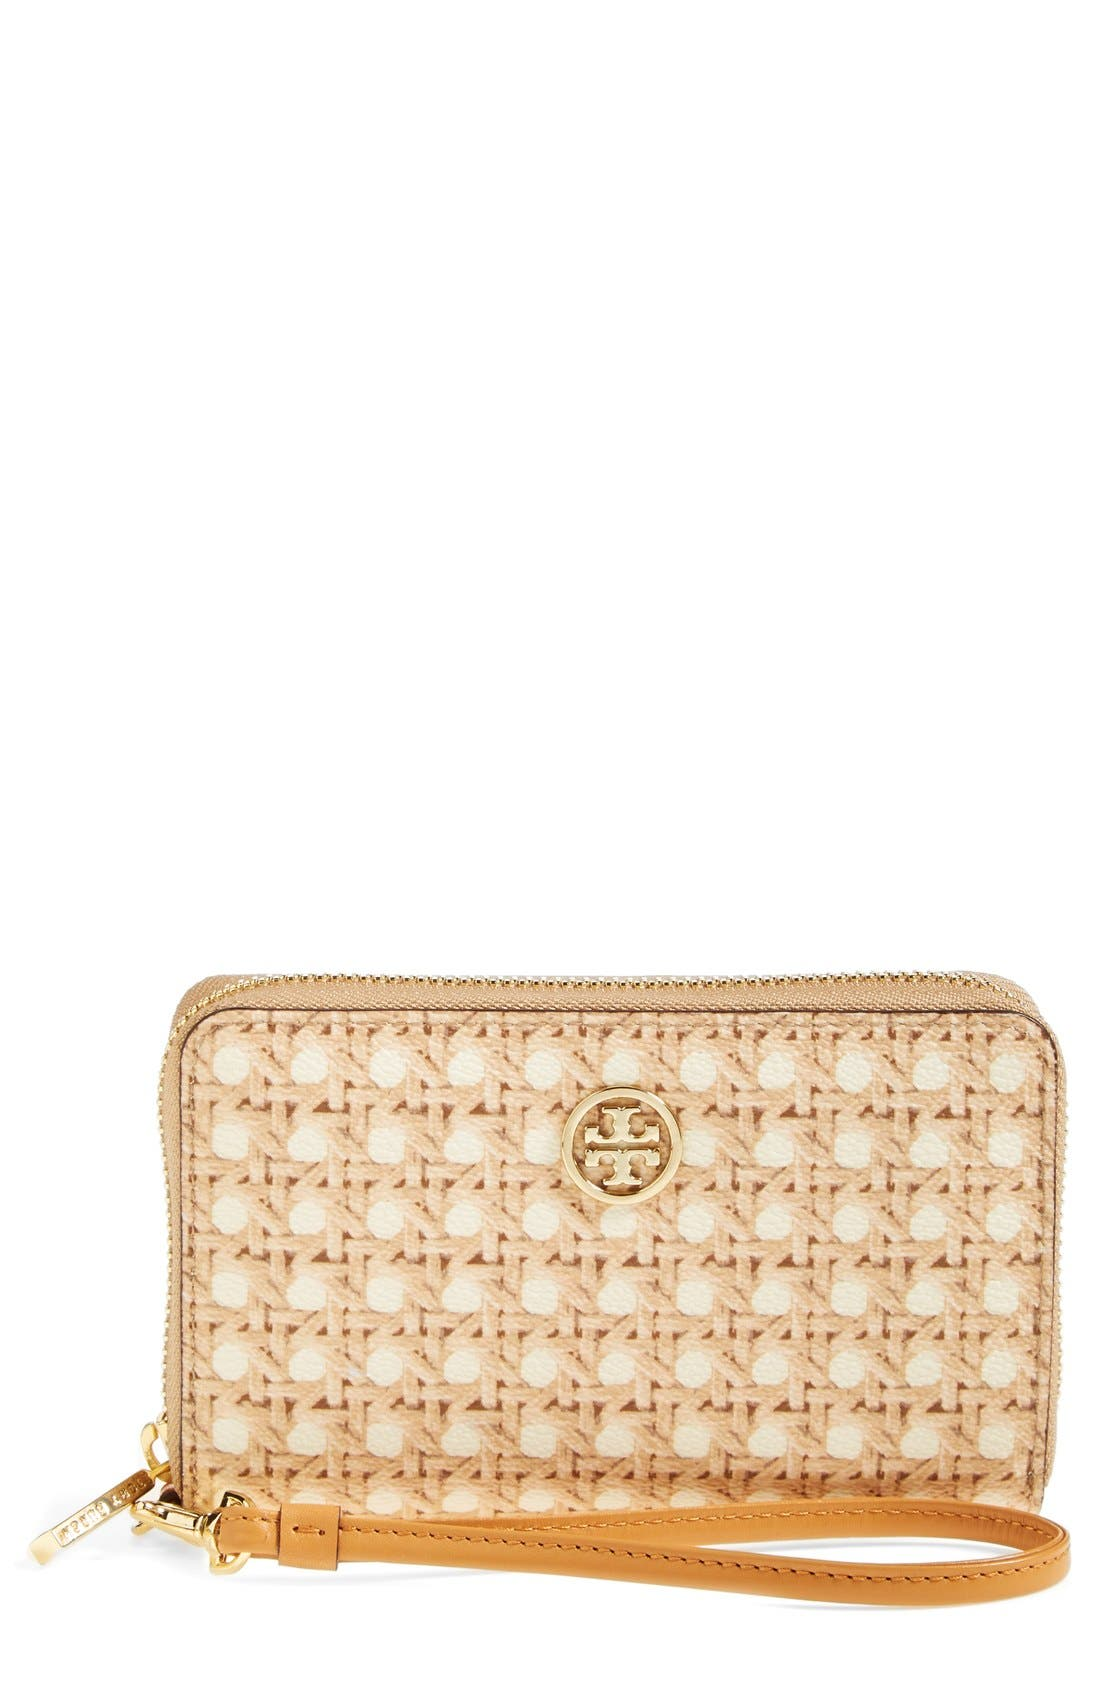 TORY BURCH 'Robinson' Smartphone Wristlet, Main, color, 210